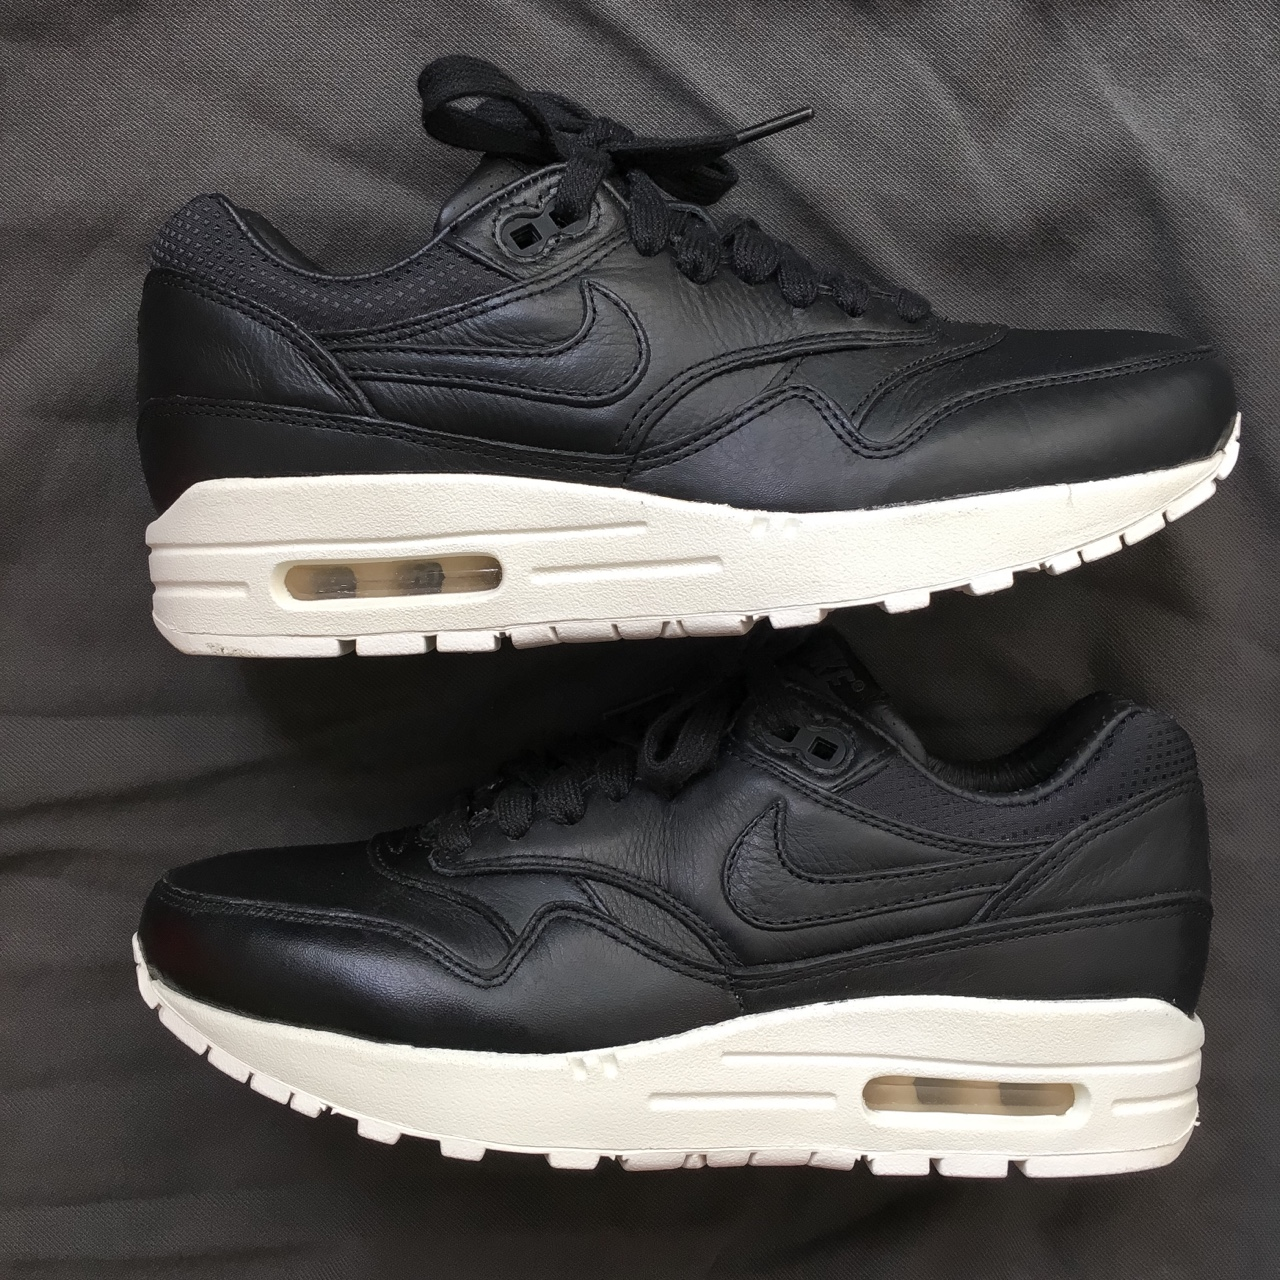 Nike Air Max 1 Pinnacle black sail. Condition 910. Depop